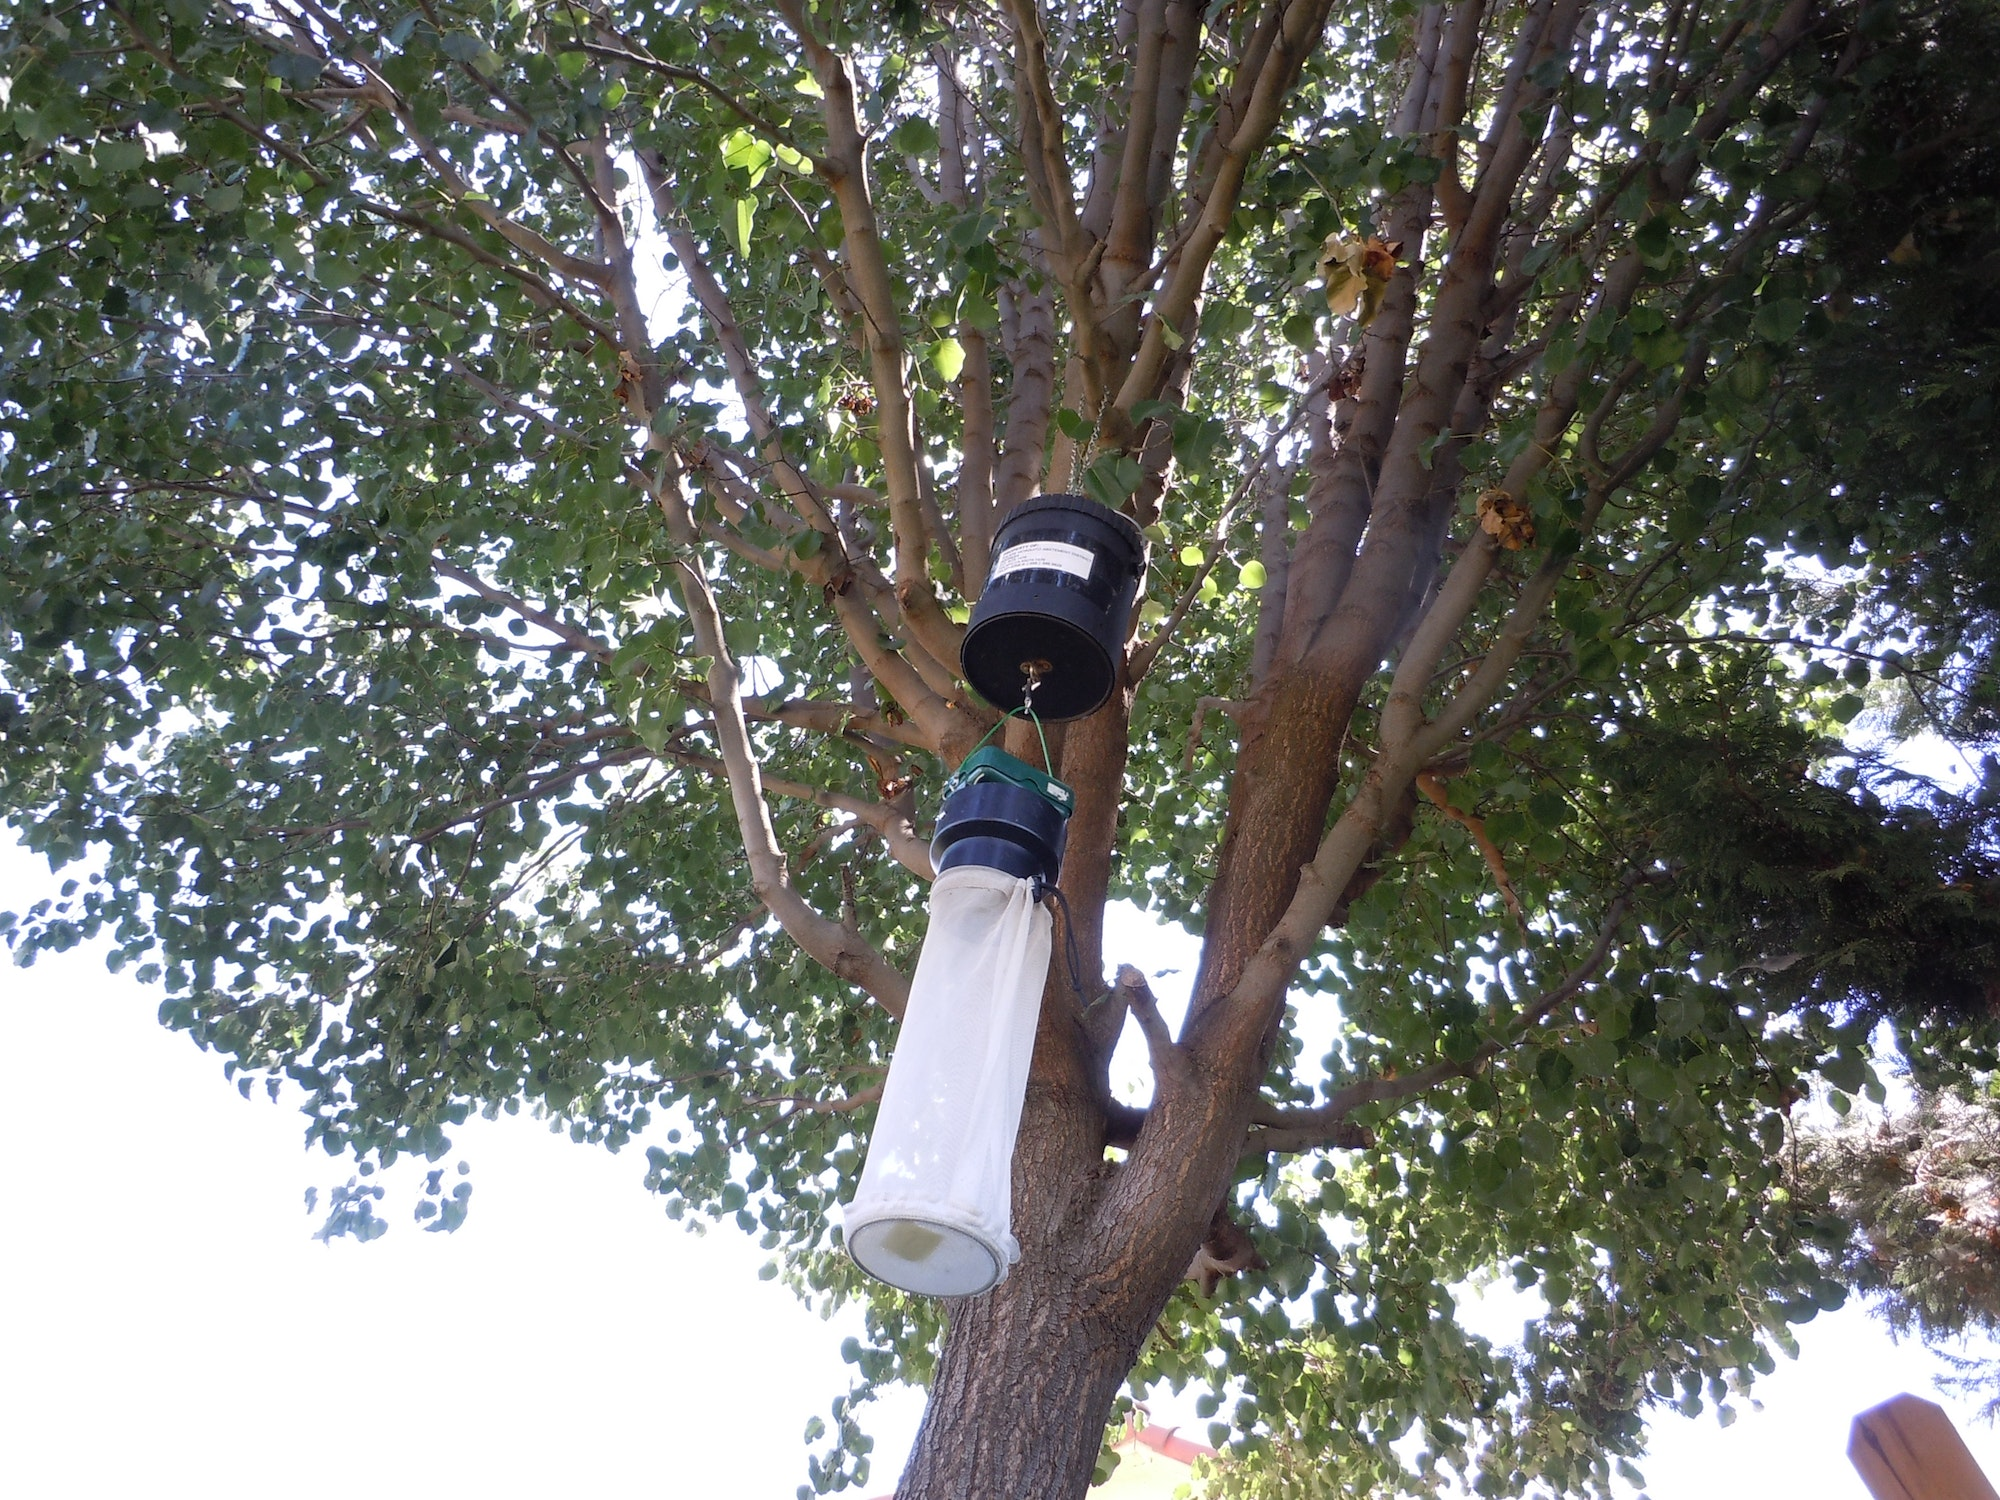 Mosquito trap in a tree